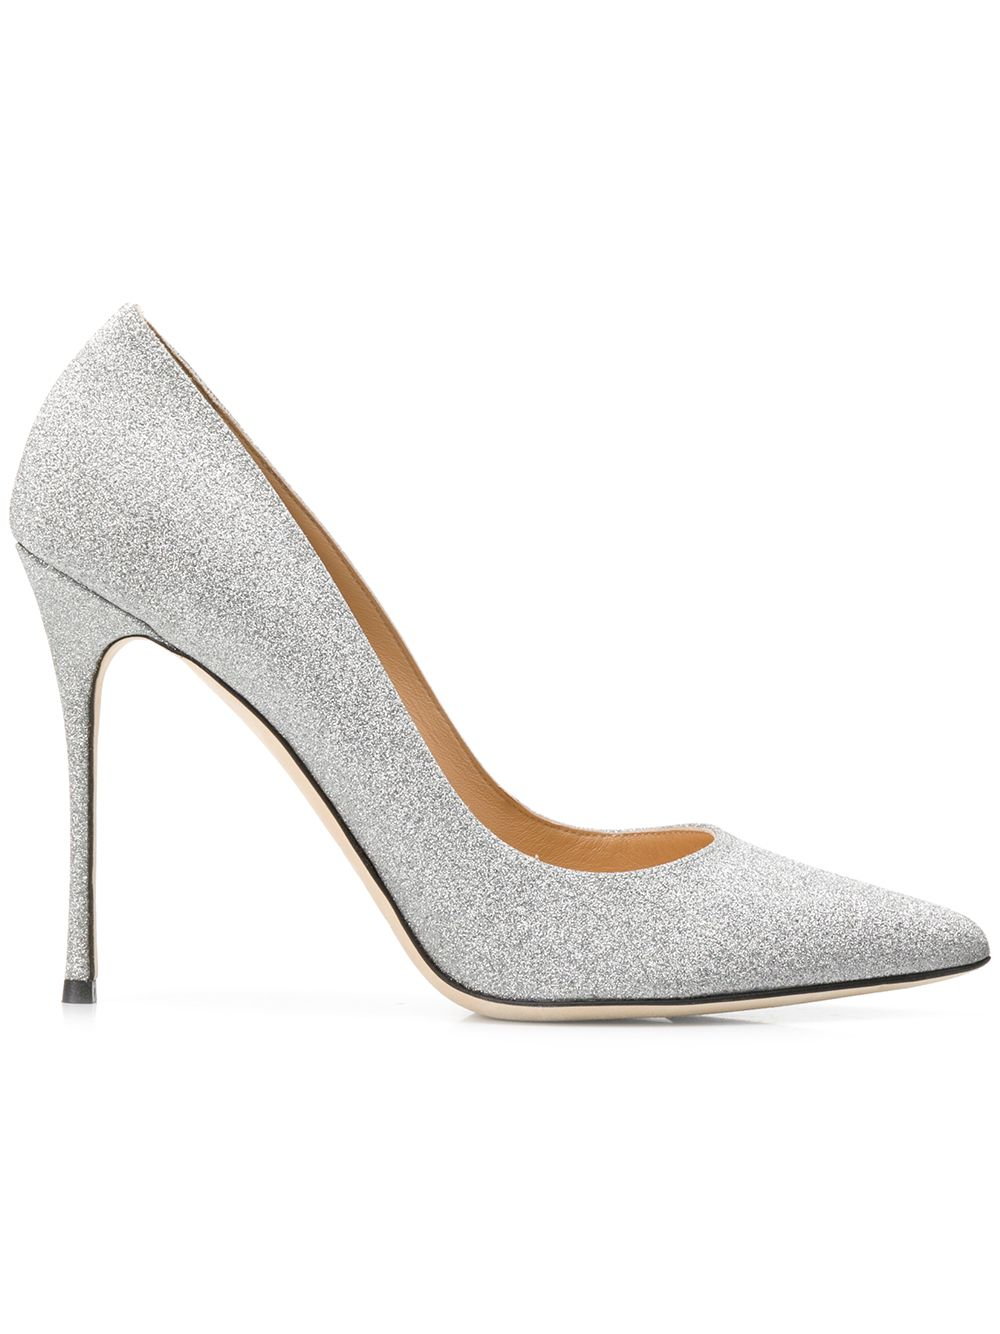 Sergio Rossi Pumps im Metallic-Look - Silber